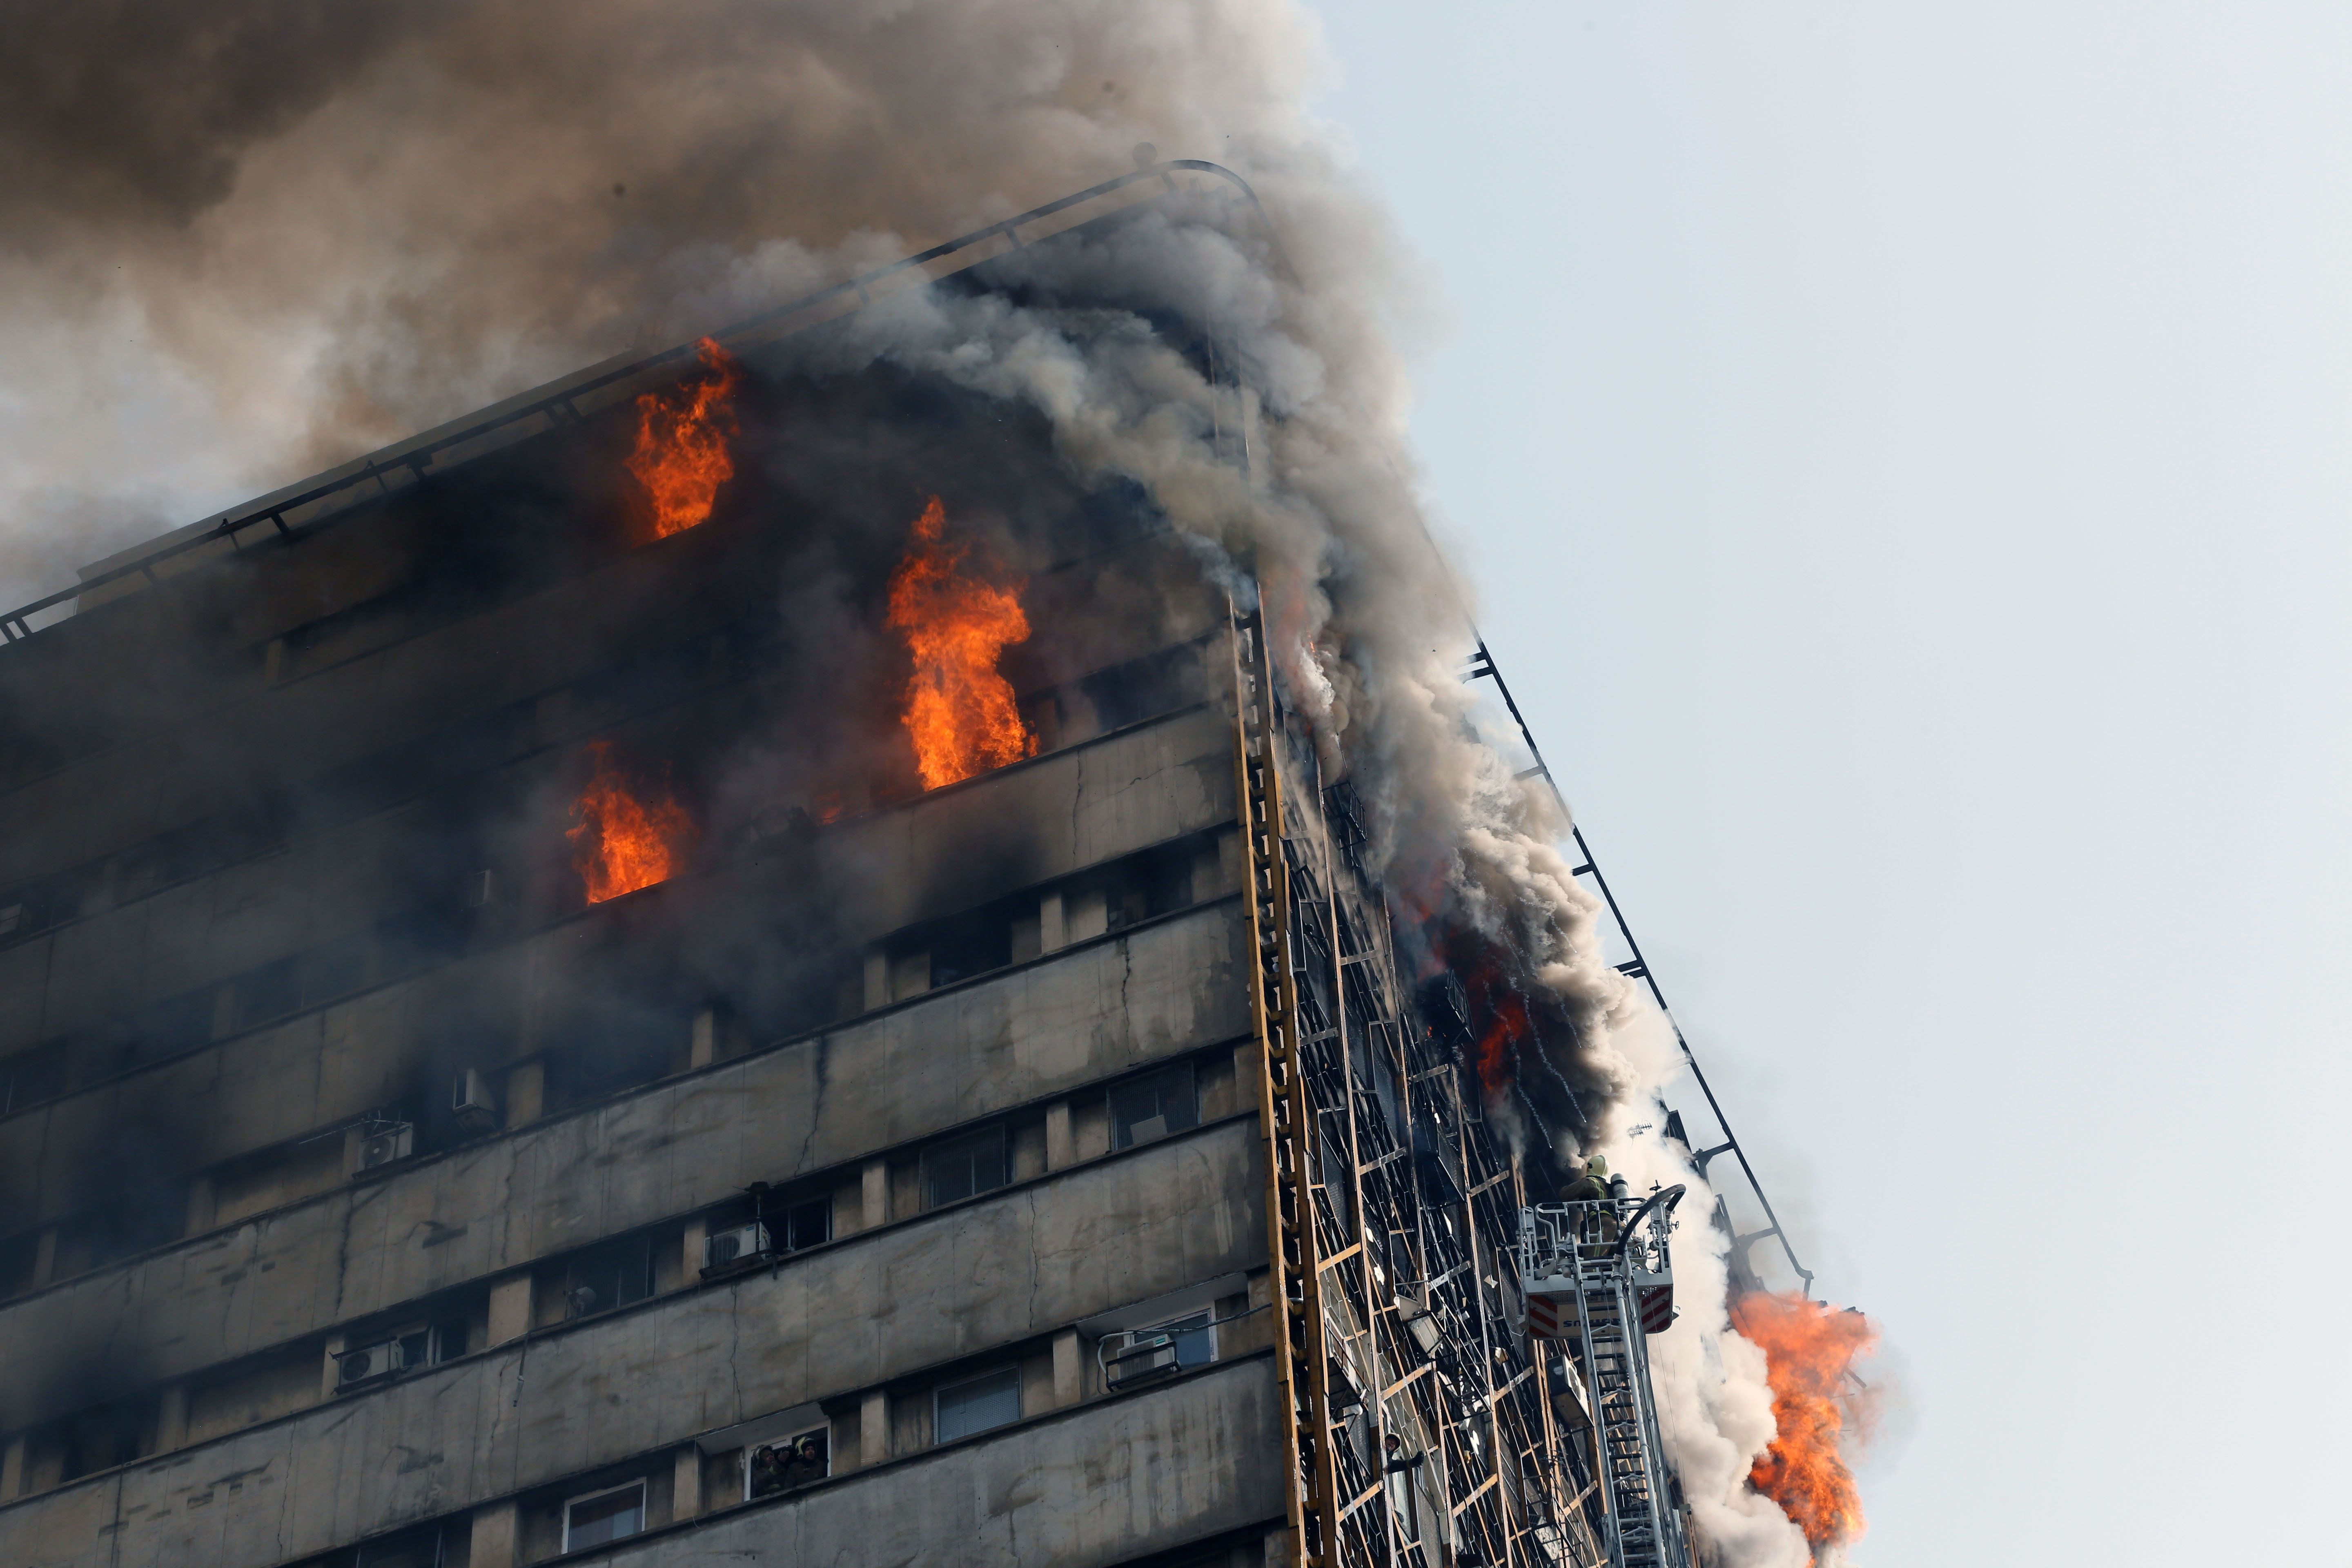 The Plasco building, one of the oldest in Tehran, caught fire on Thursday. Dozens of people were